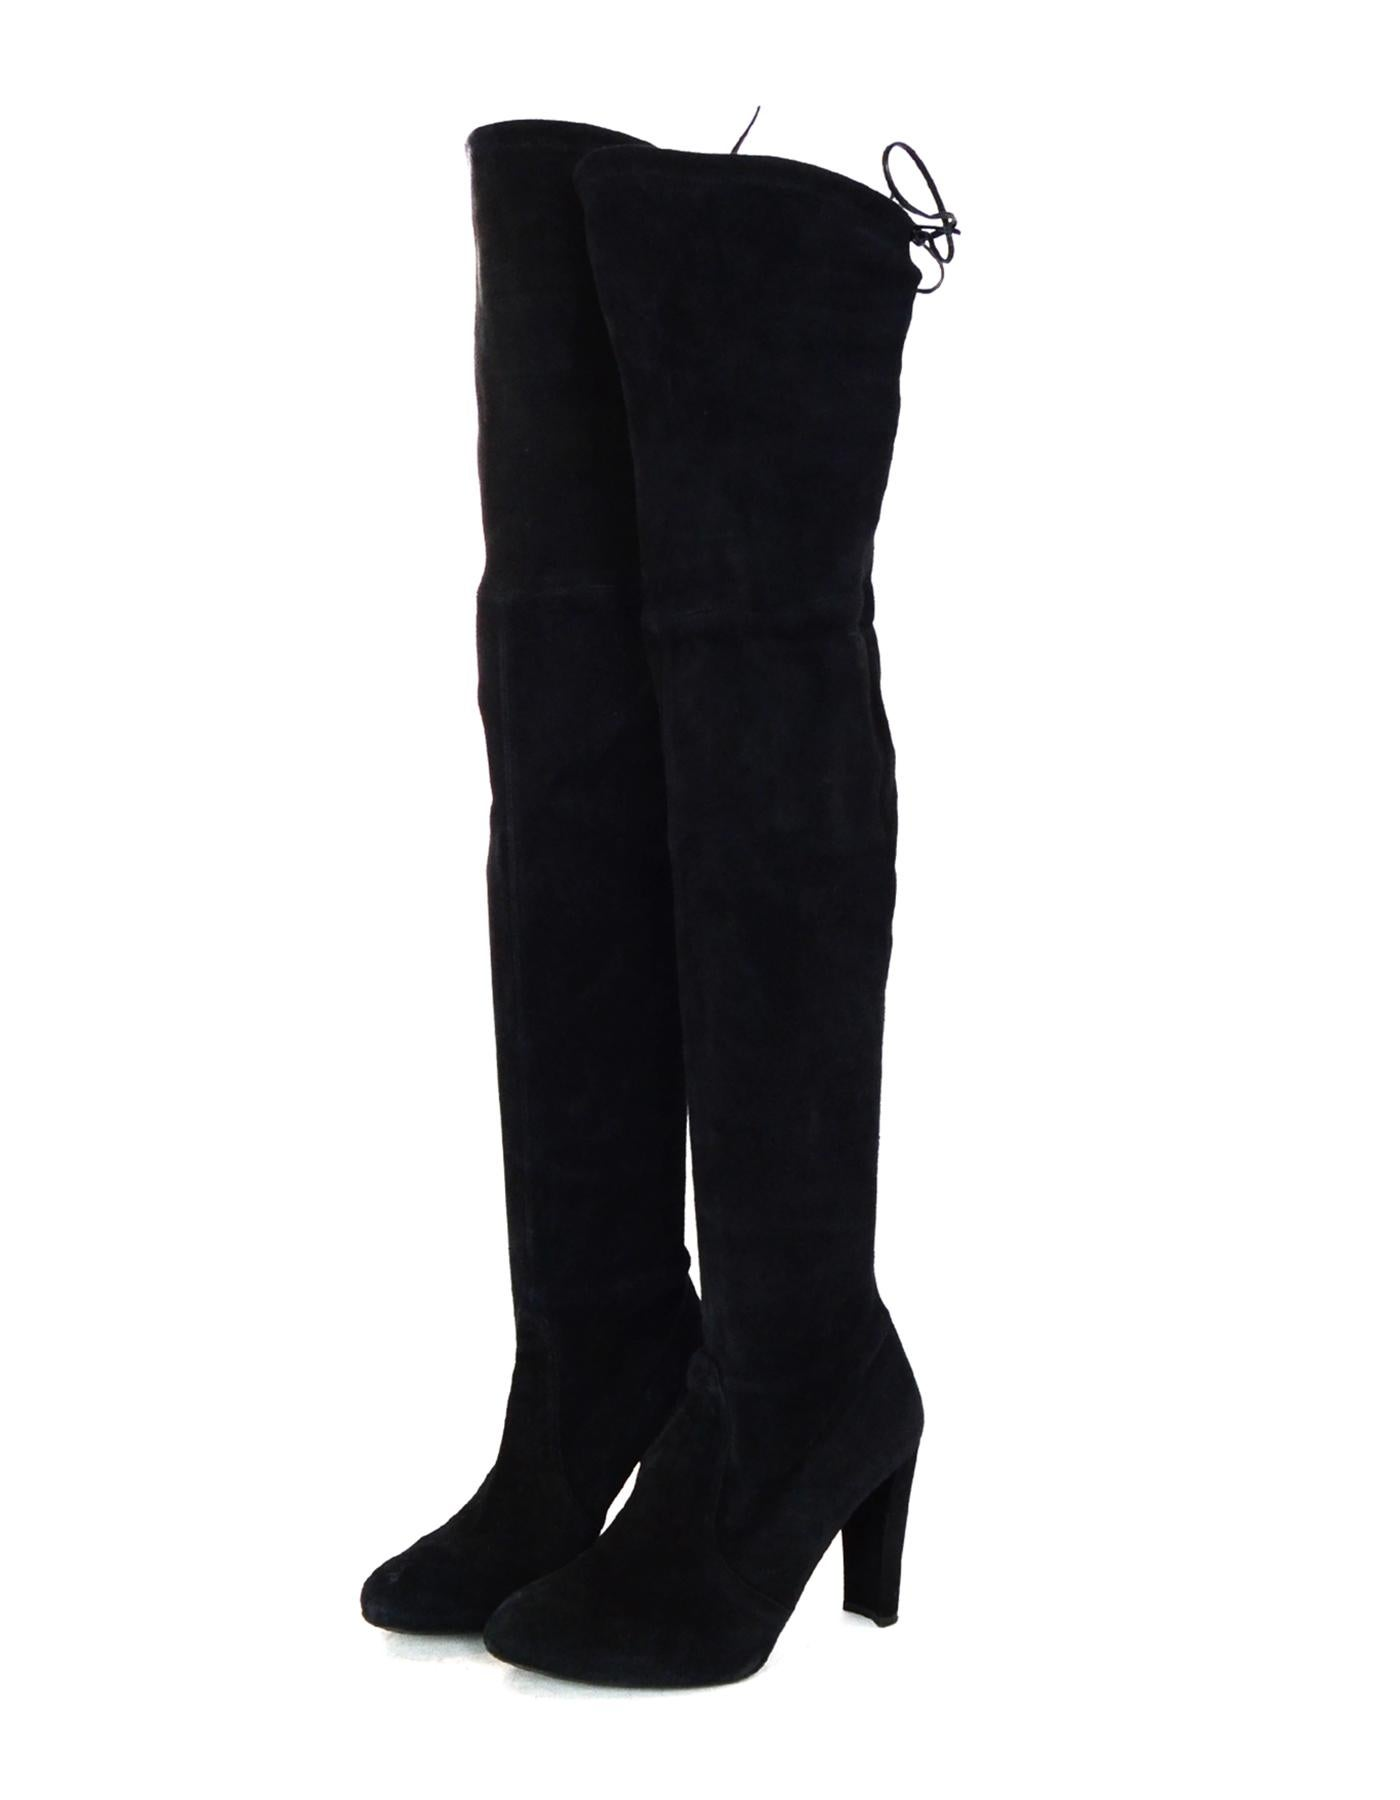 2e3cdc350bb Stuart Weitzman Black HiLine Suede Thigh High Boots Sz 9 For Sale at 1stdibs